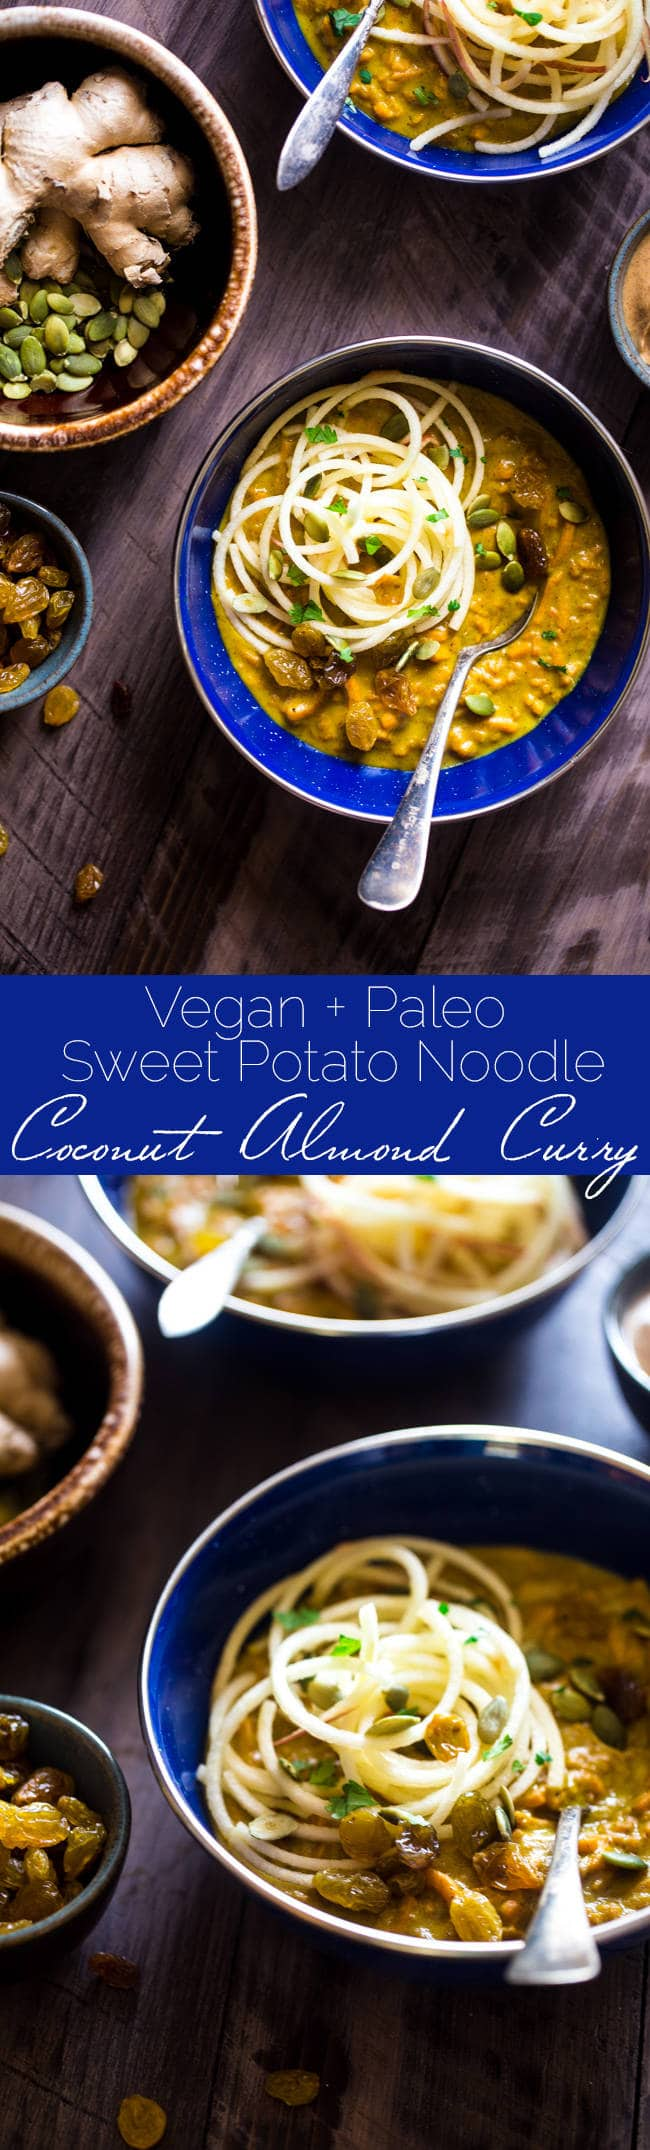 Paleo & Vegan Almond Butter Coconut Curry with Spiralized Sweet Potato and Apple Noodles - Creamy, spicy and ready in 30 minutes! A healthy bowl of fall comfort for your next meatless Monday! | Foodfaithfitness.com | @FoodFaithFit